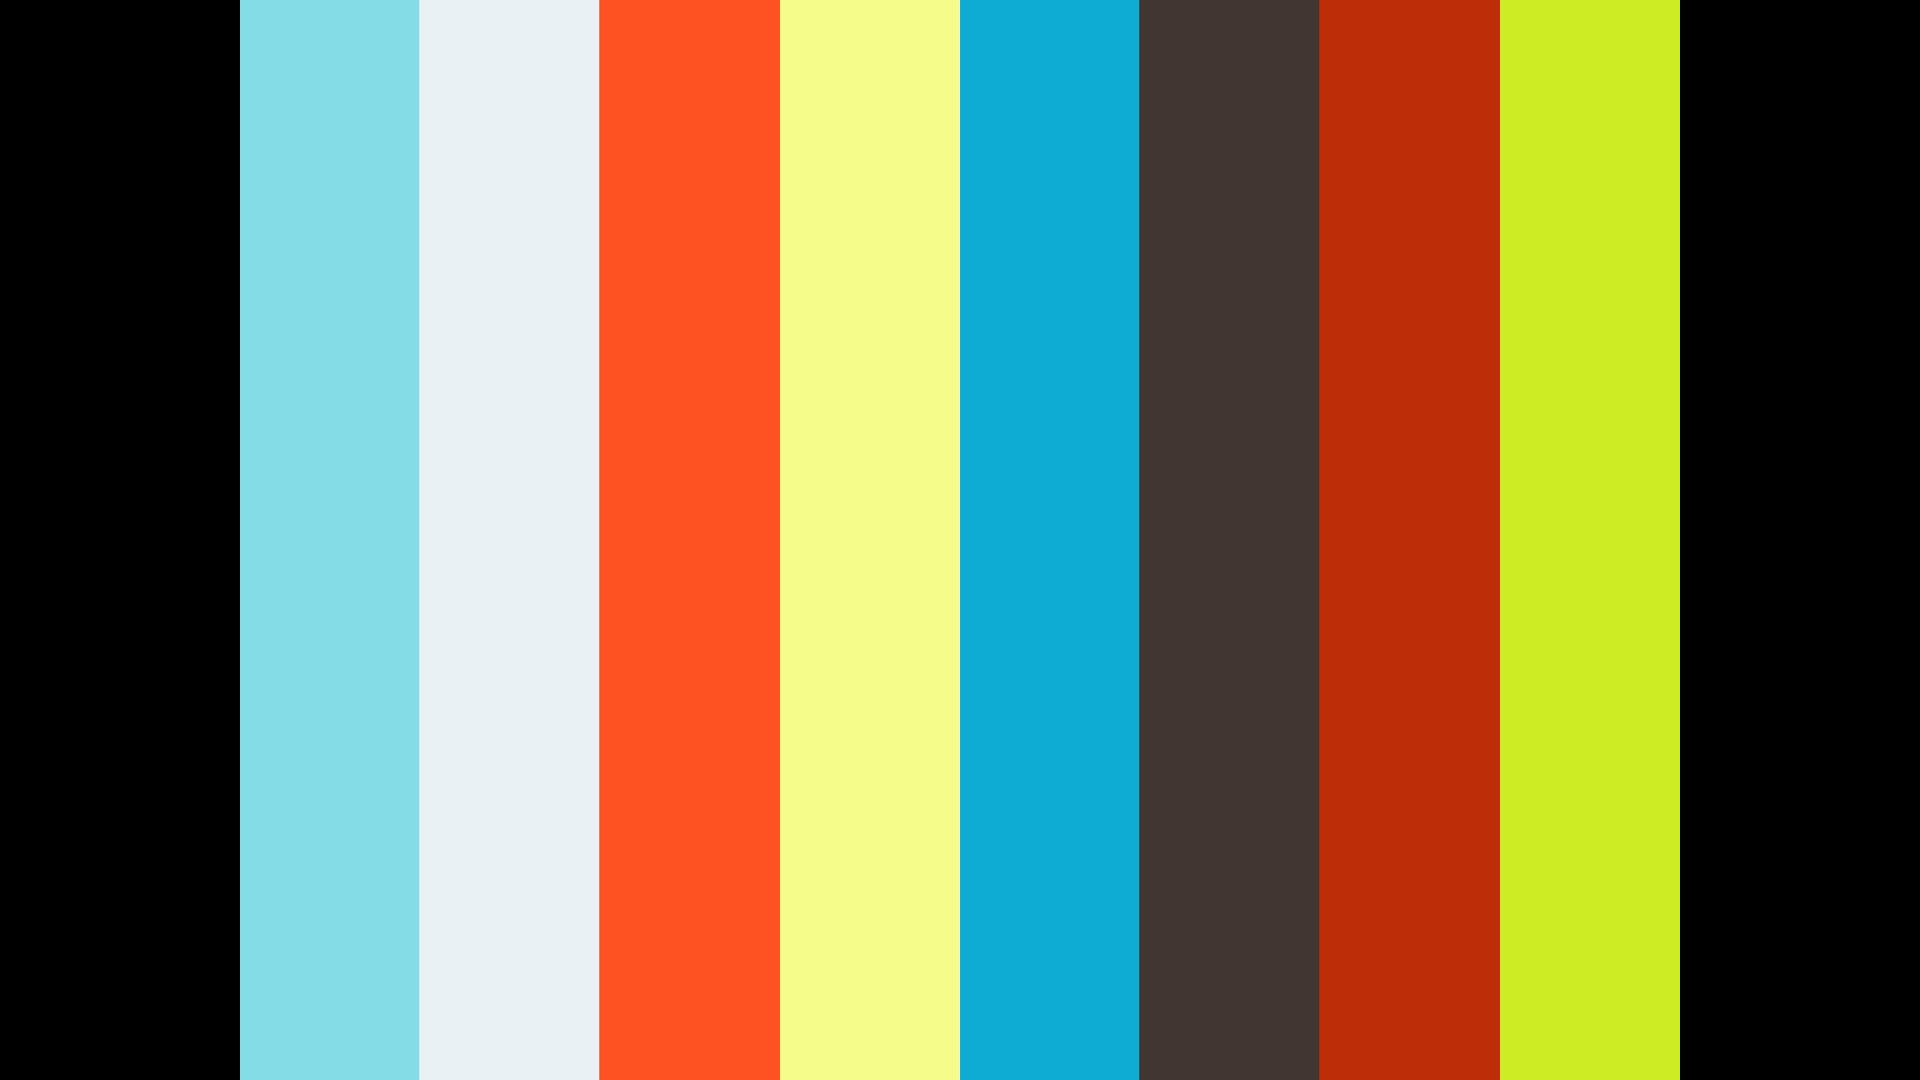 Talk by Julie Gaillard (Panel III)